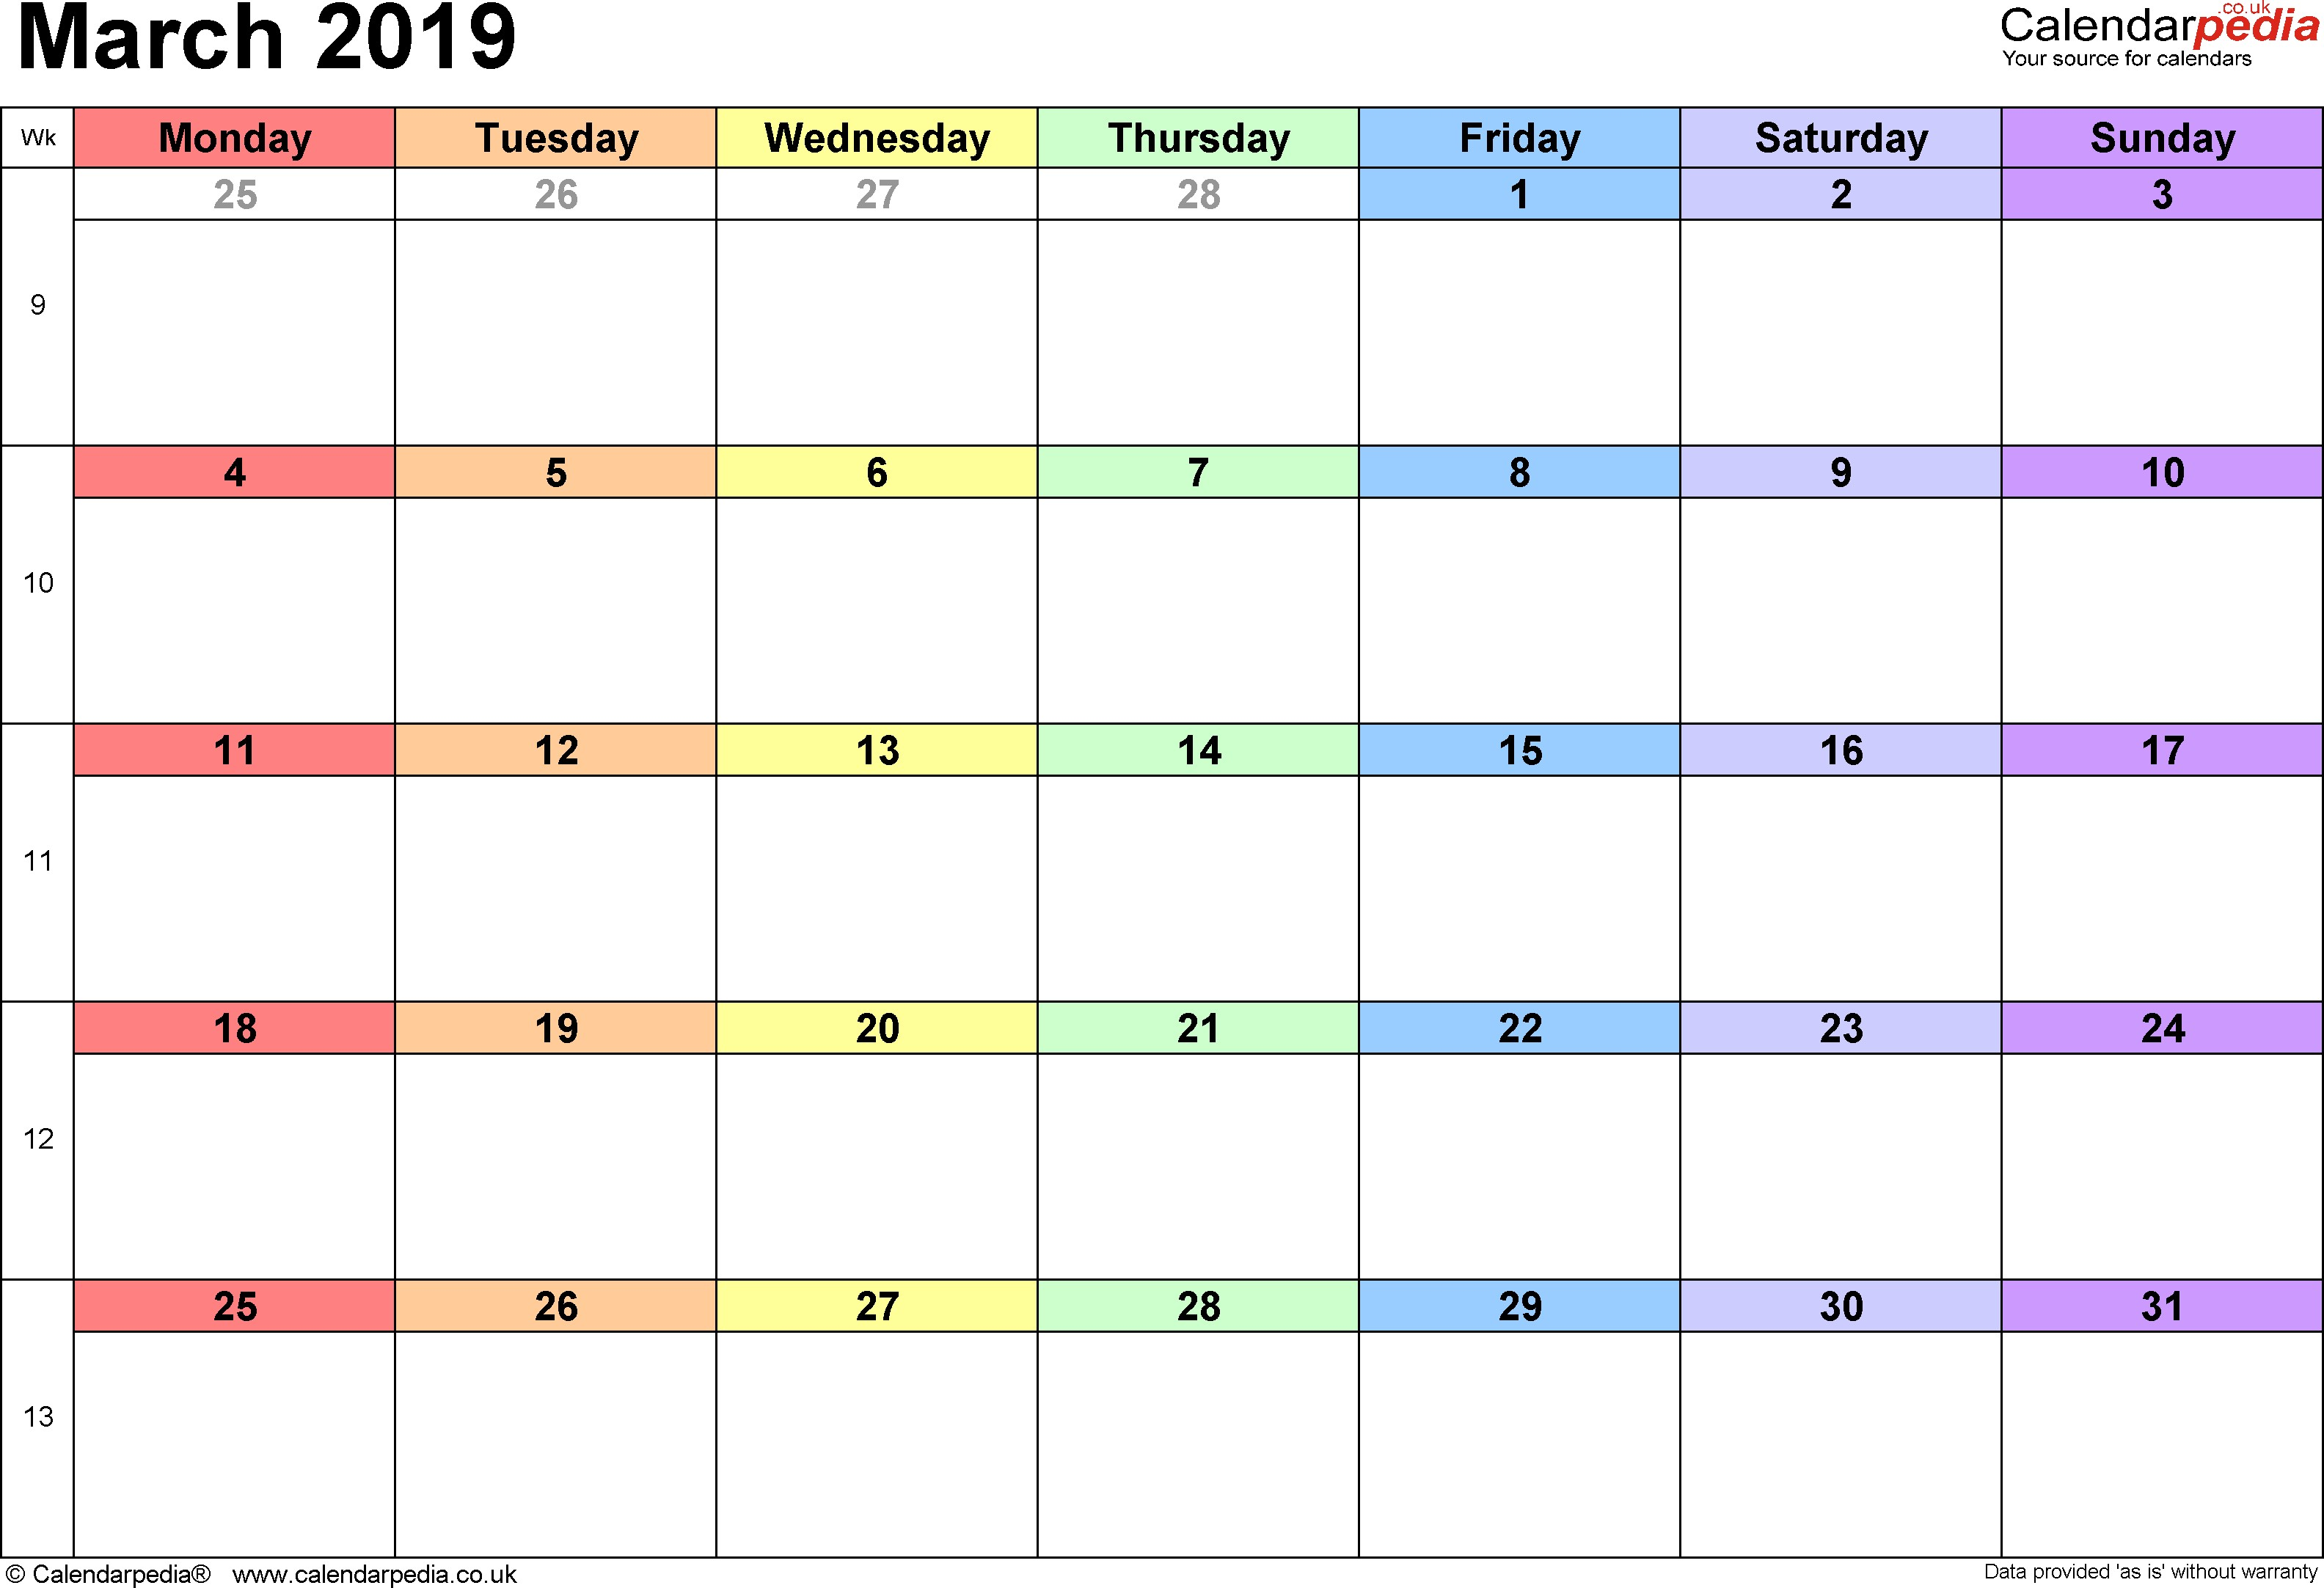 March Holiday Calendar 2019 Más Recientemente Liberado Calendar March 2019 Uk Bank Holidays Excel Pdf Word Templates Of March Holiday Calendar 2019 Mejores Y Más Novedosos March 2019 Calendar Printable with Holidays